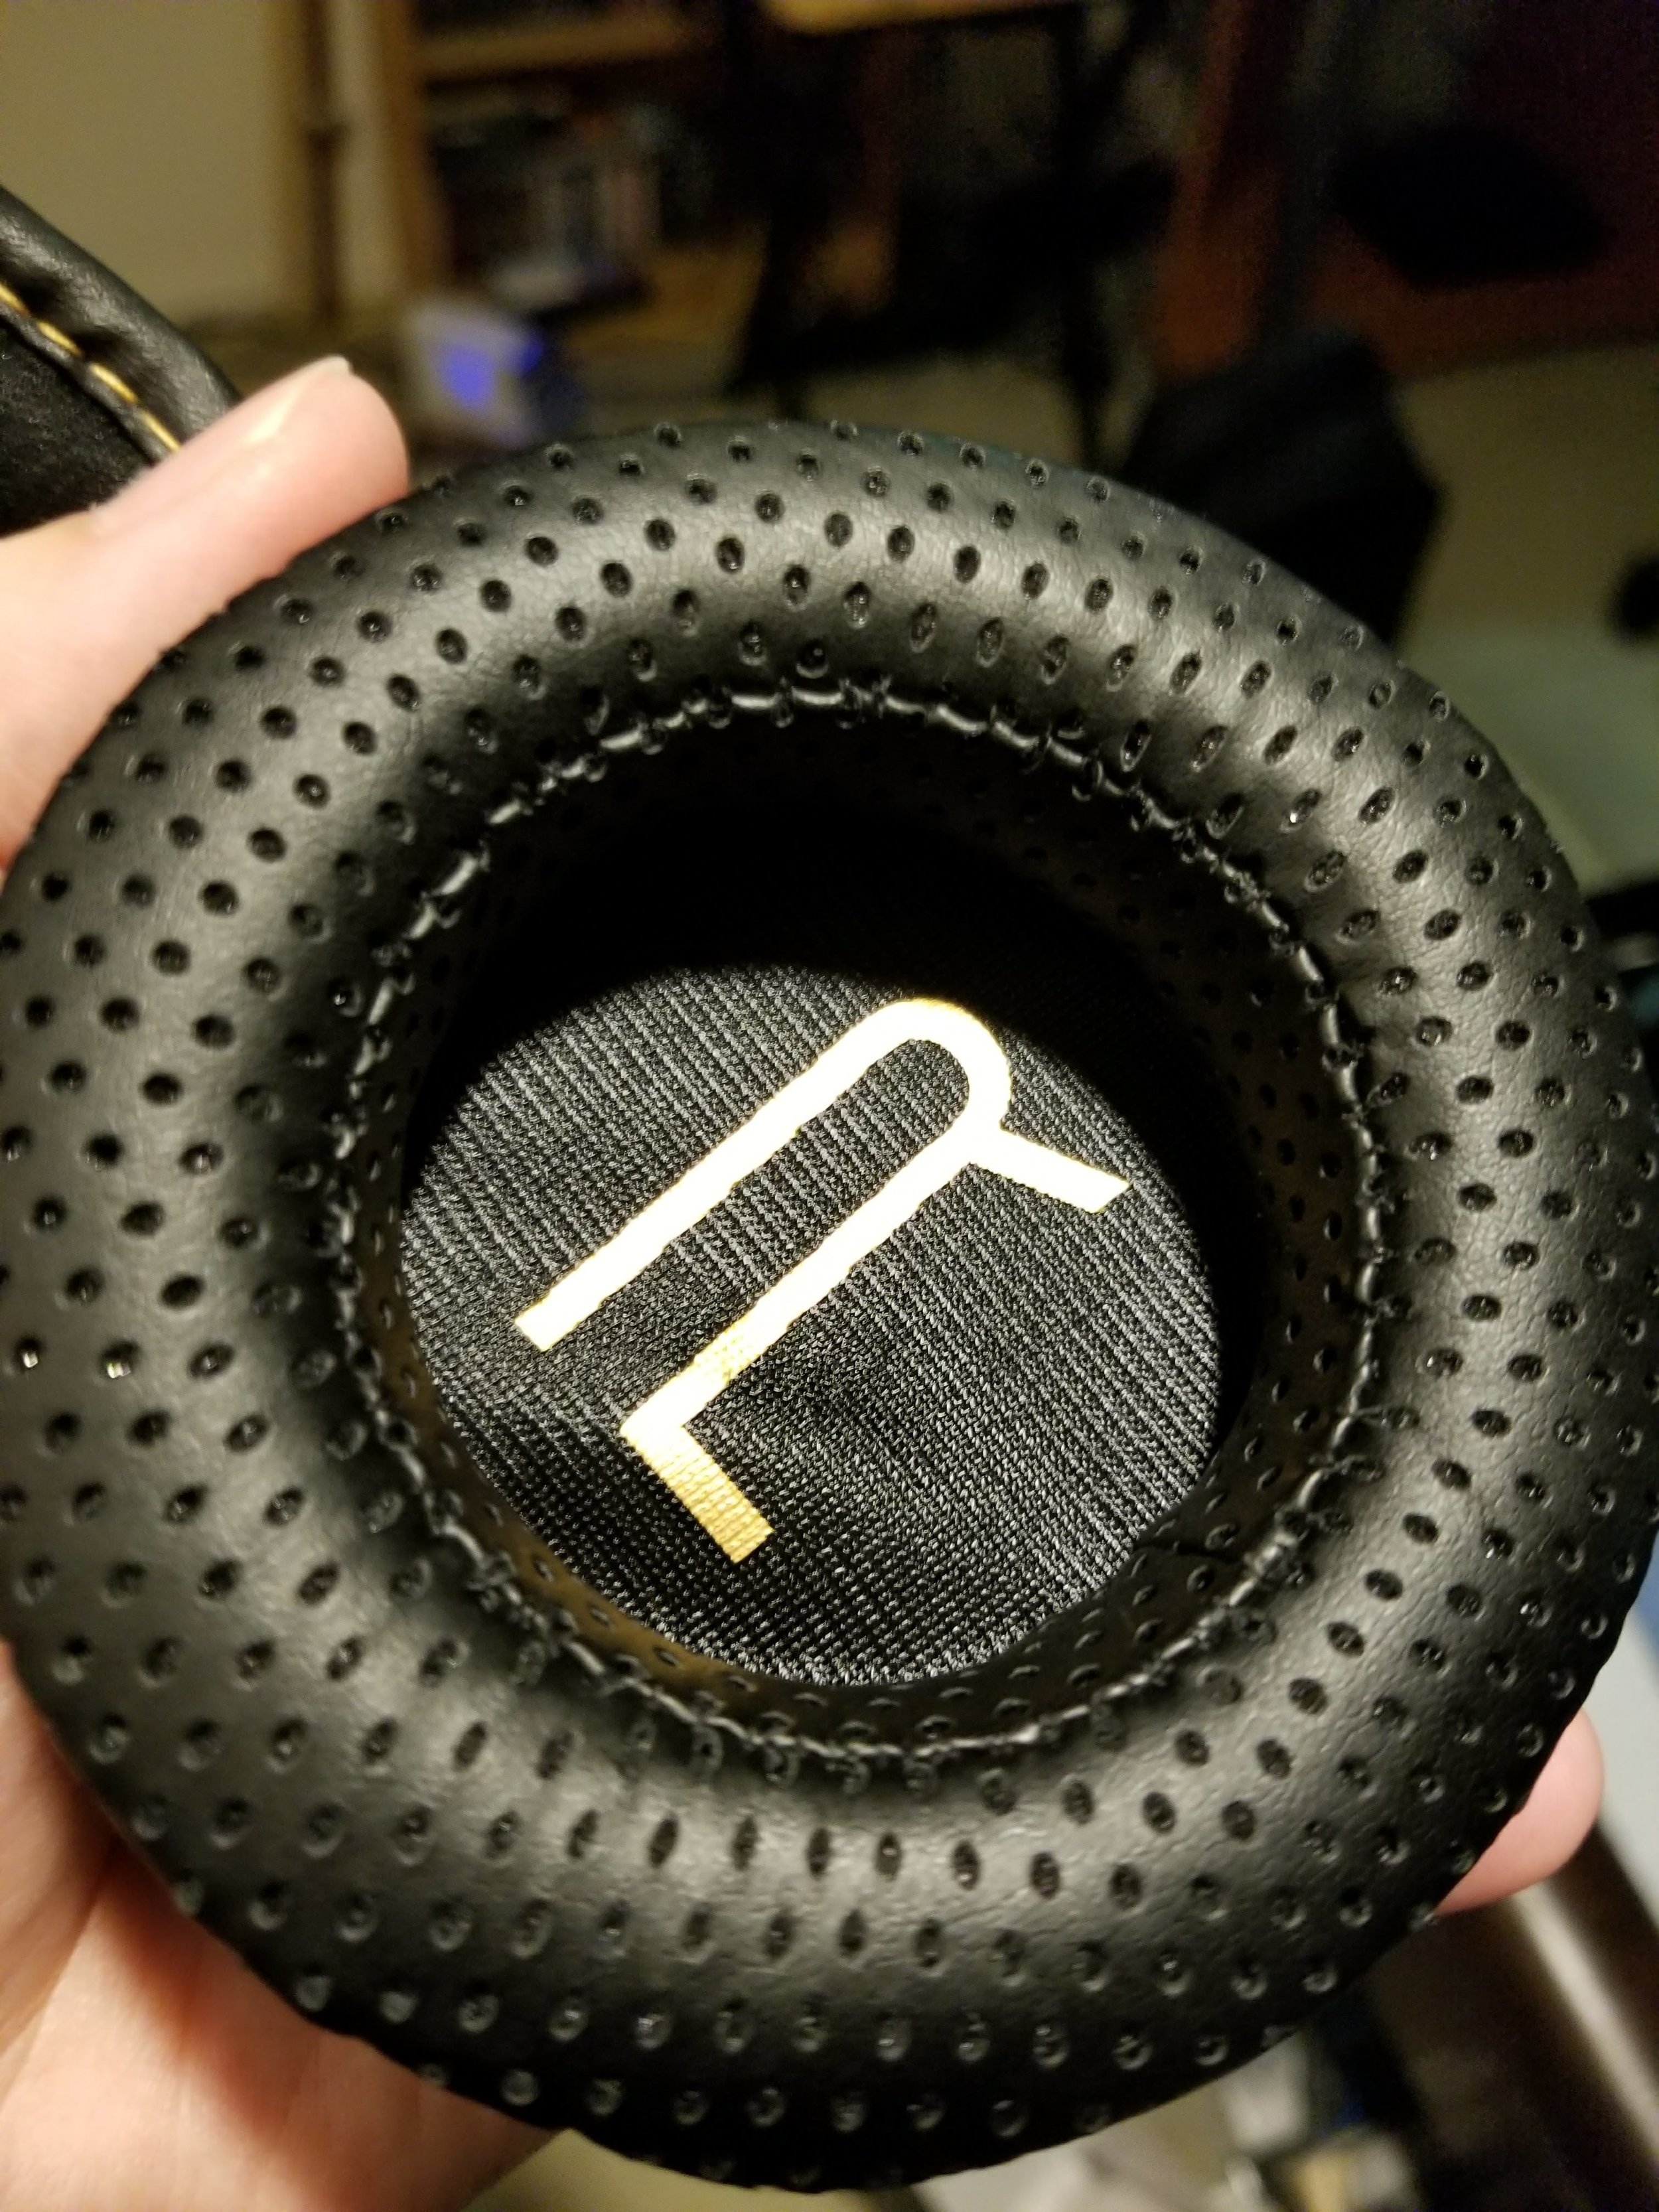 The right ear cup has a big R in it, similar to other RIG headsets. It's the only garish thing about the design.